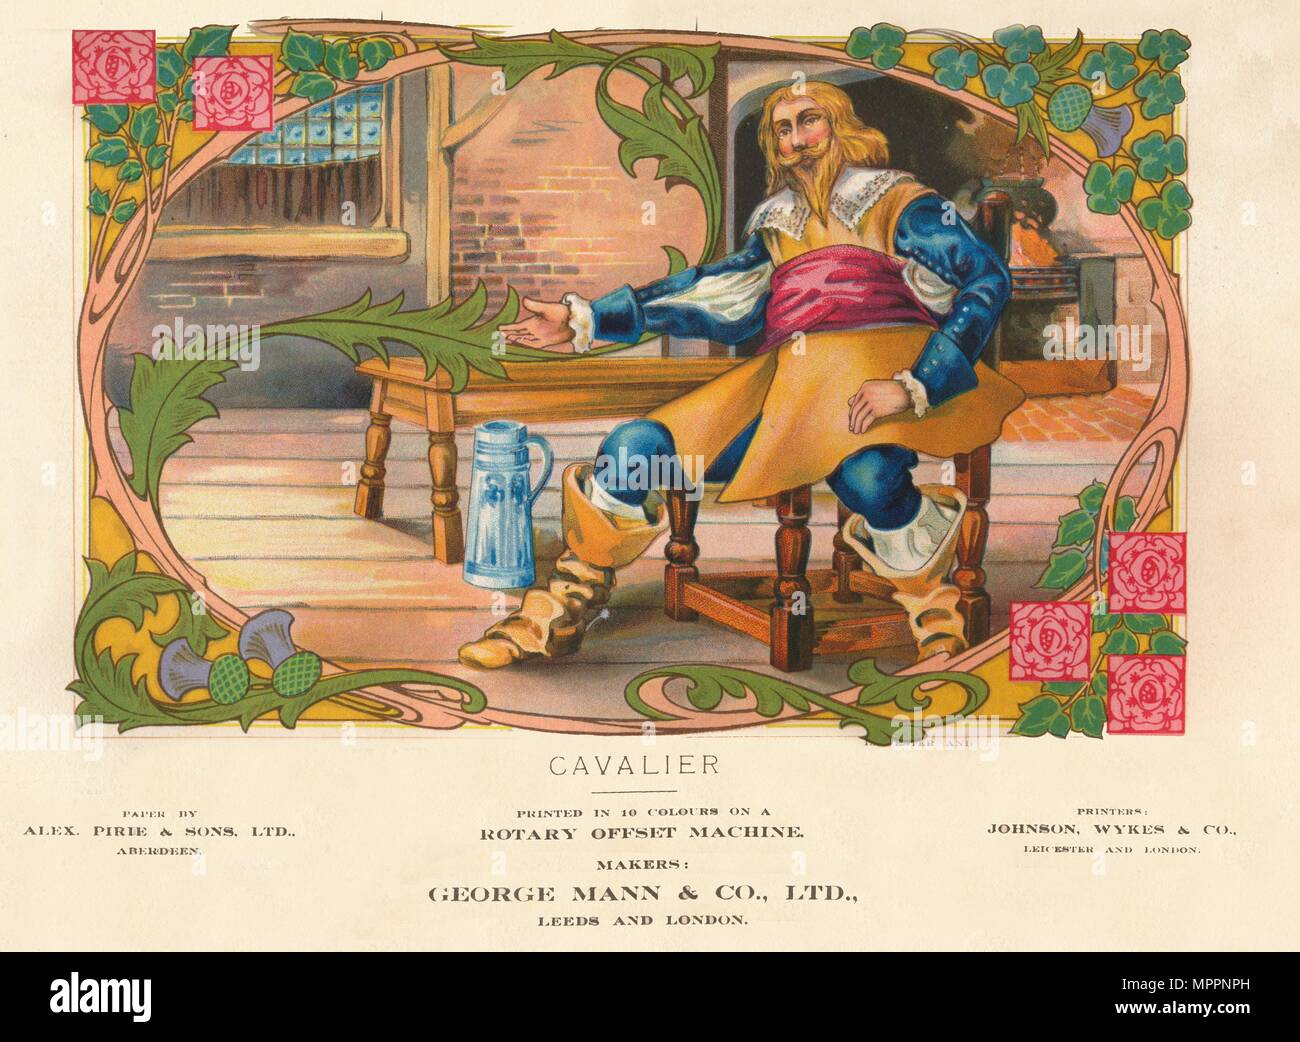 'Cavalier', 1910. Artist: George Mann & Co. - Stock Image